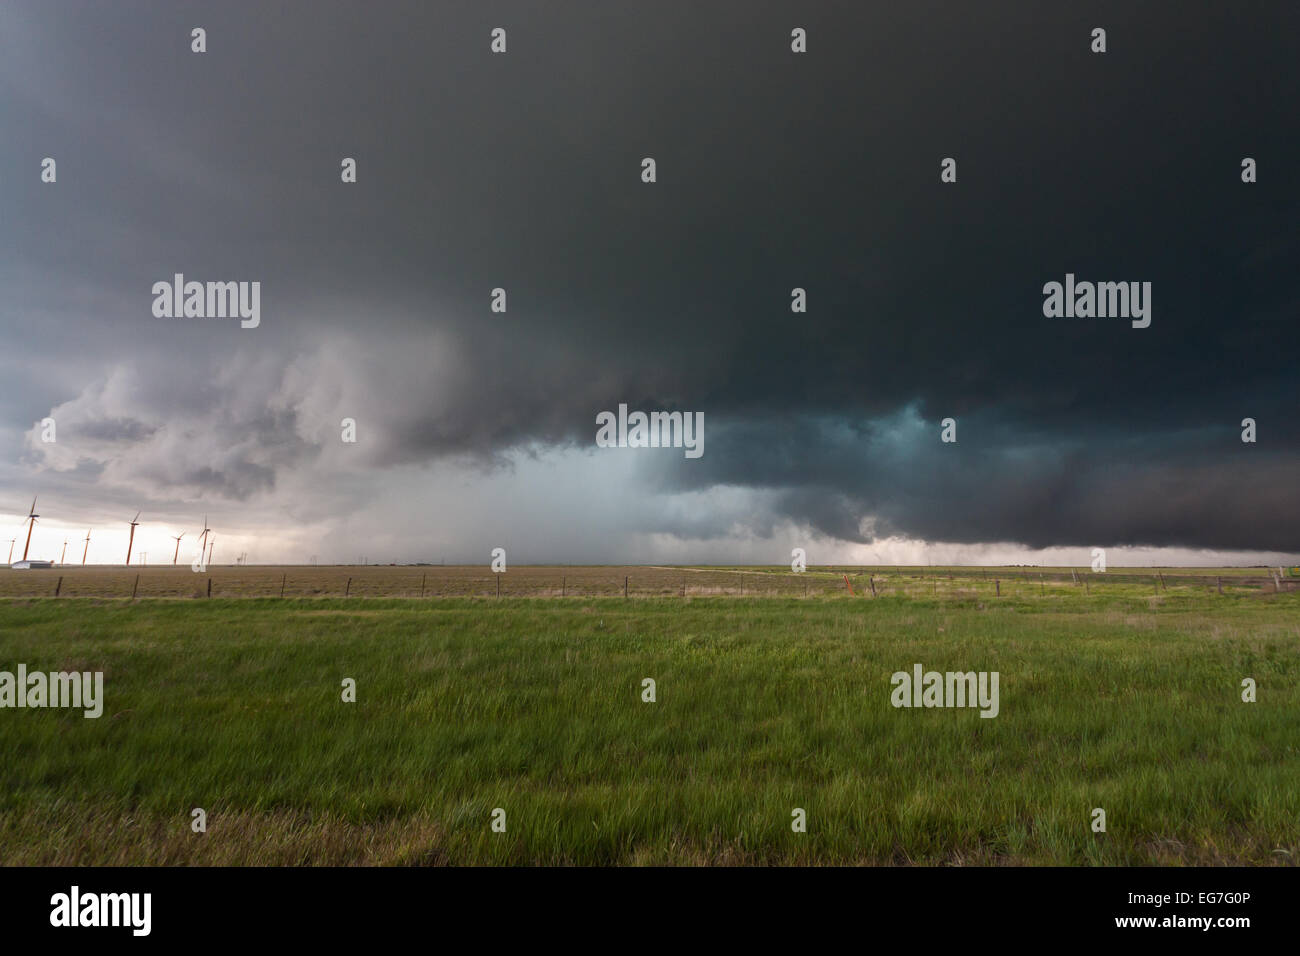 A powerful tornado warned supercell thunderstorm rolls across the Texas landscape with a large wall cloud and green - Stock Image